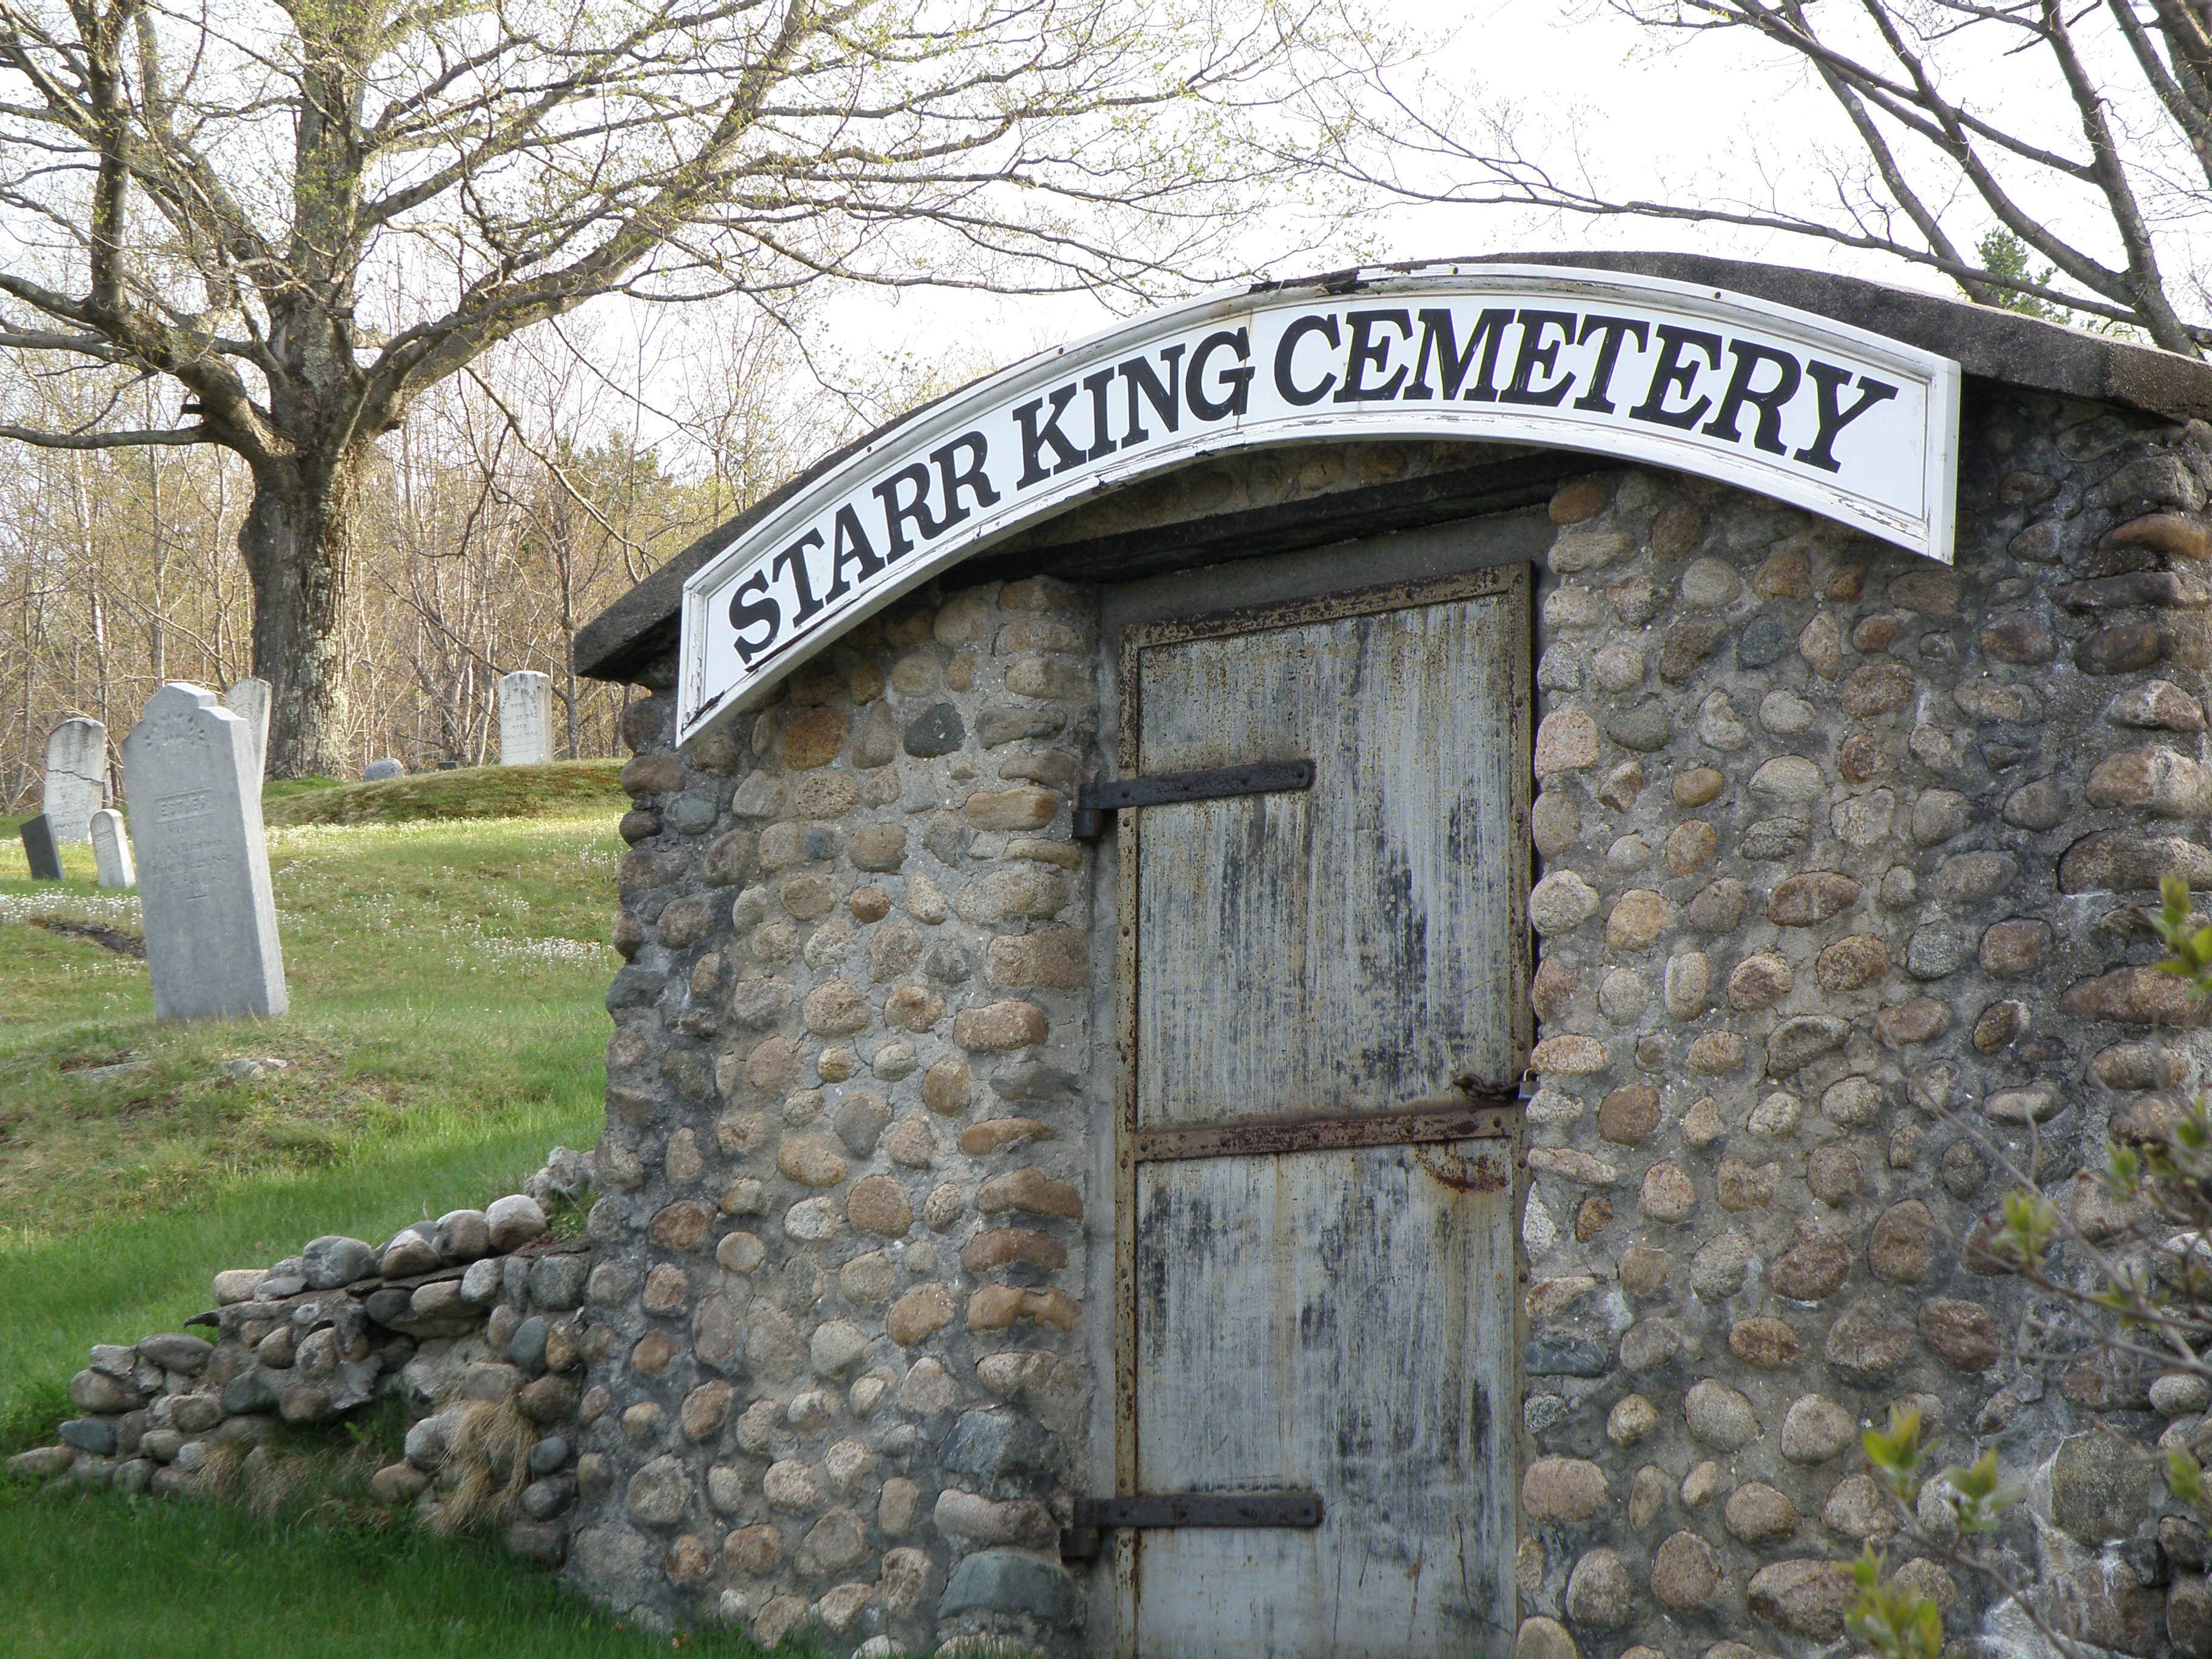 Starr King Cemetery